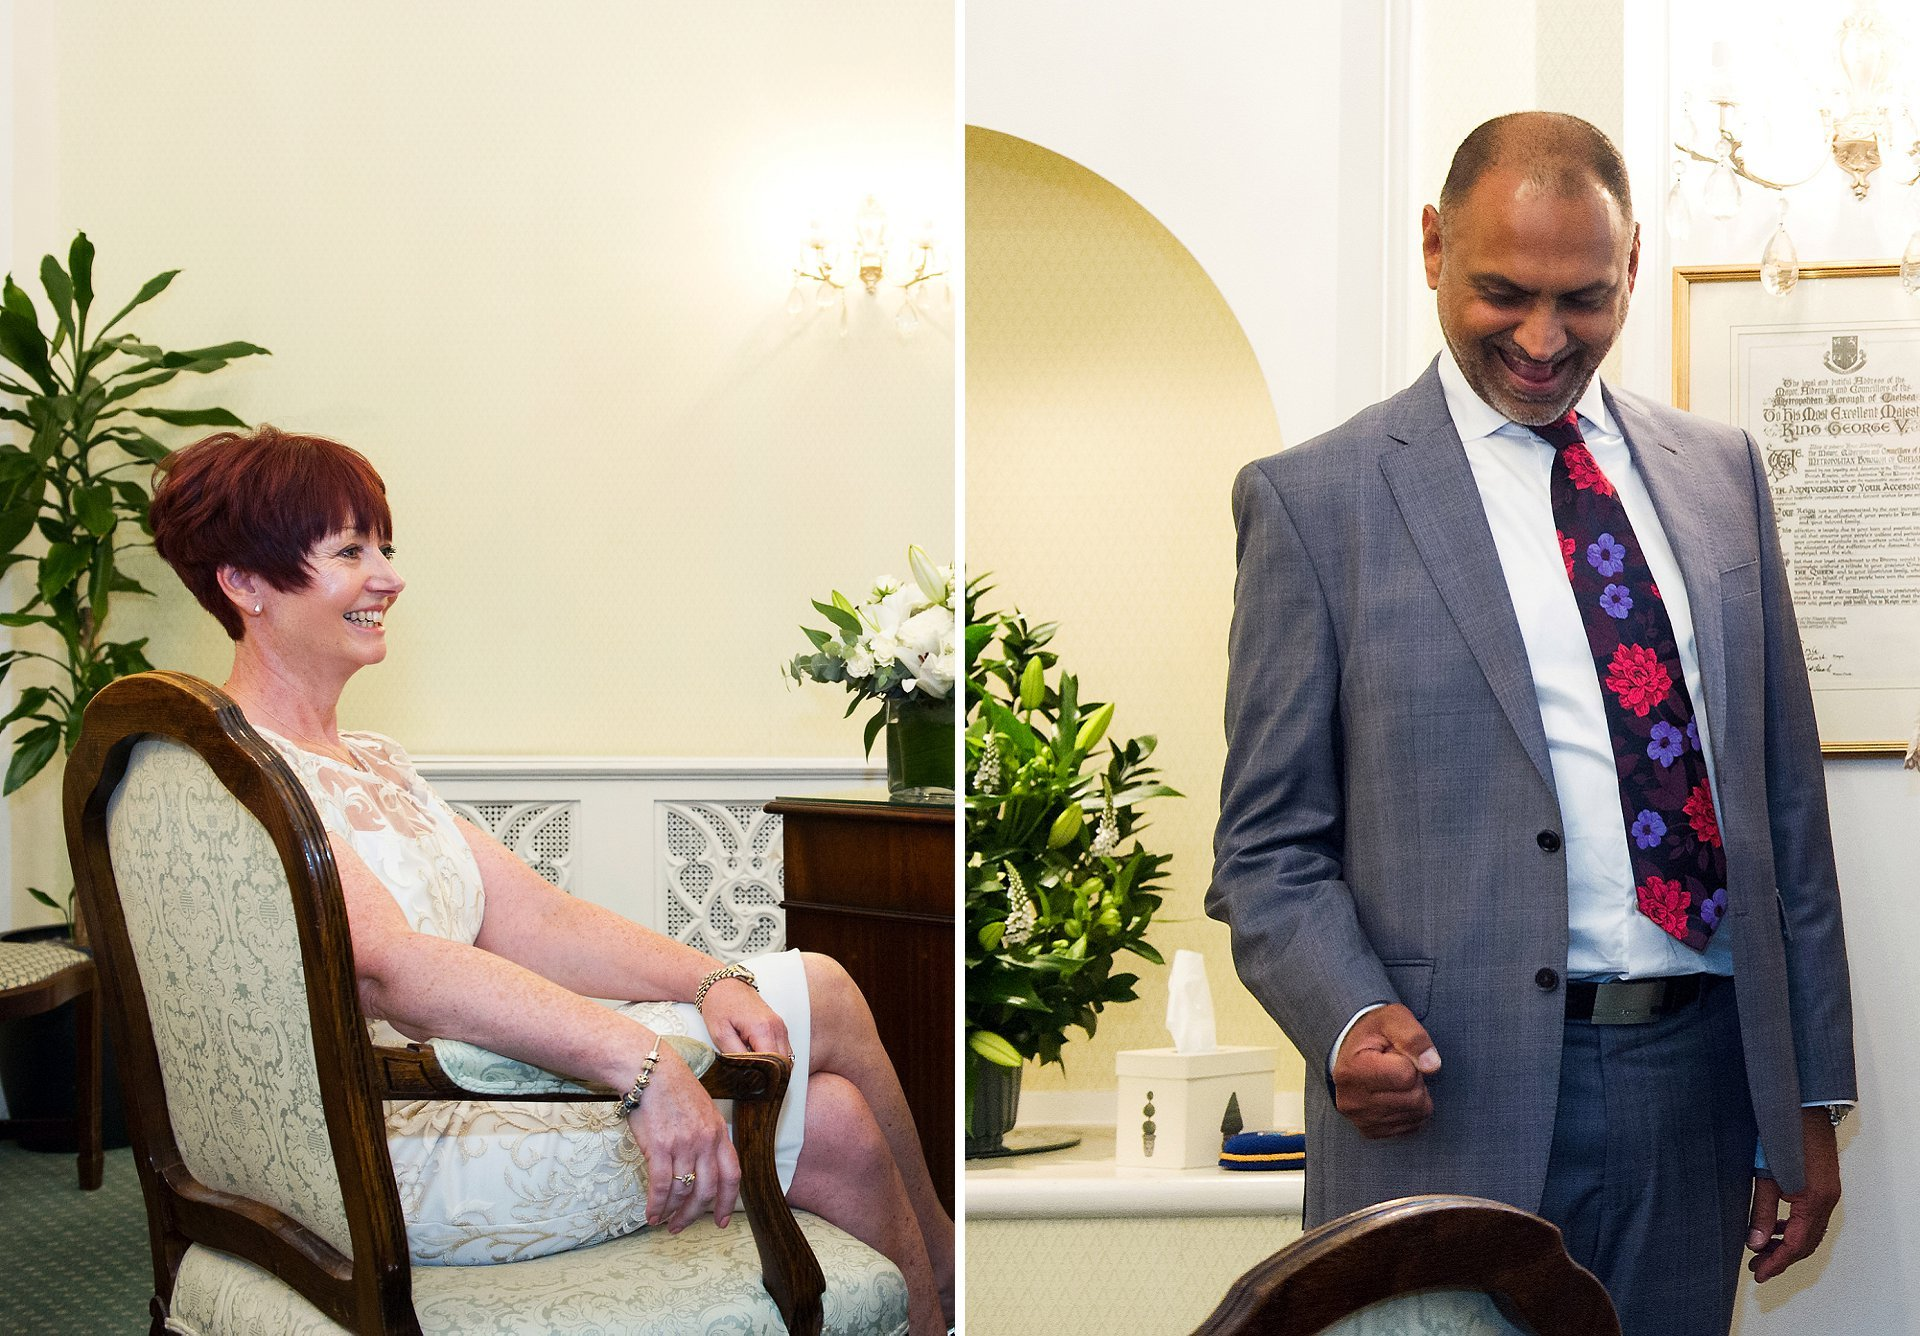 The bride smiles as her husband celebrates his civil marriage with a football style 'get in!'